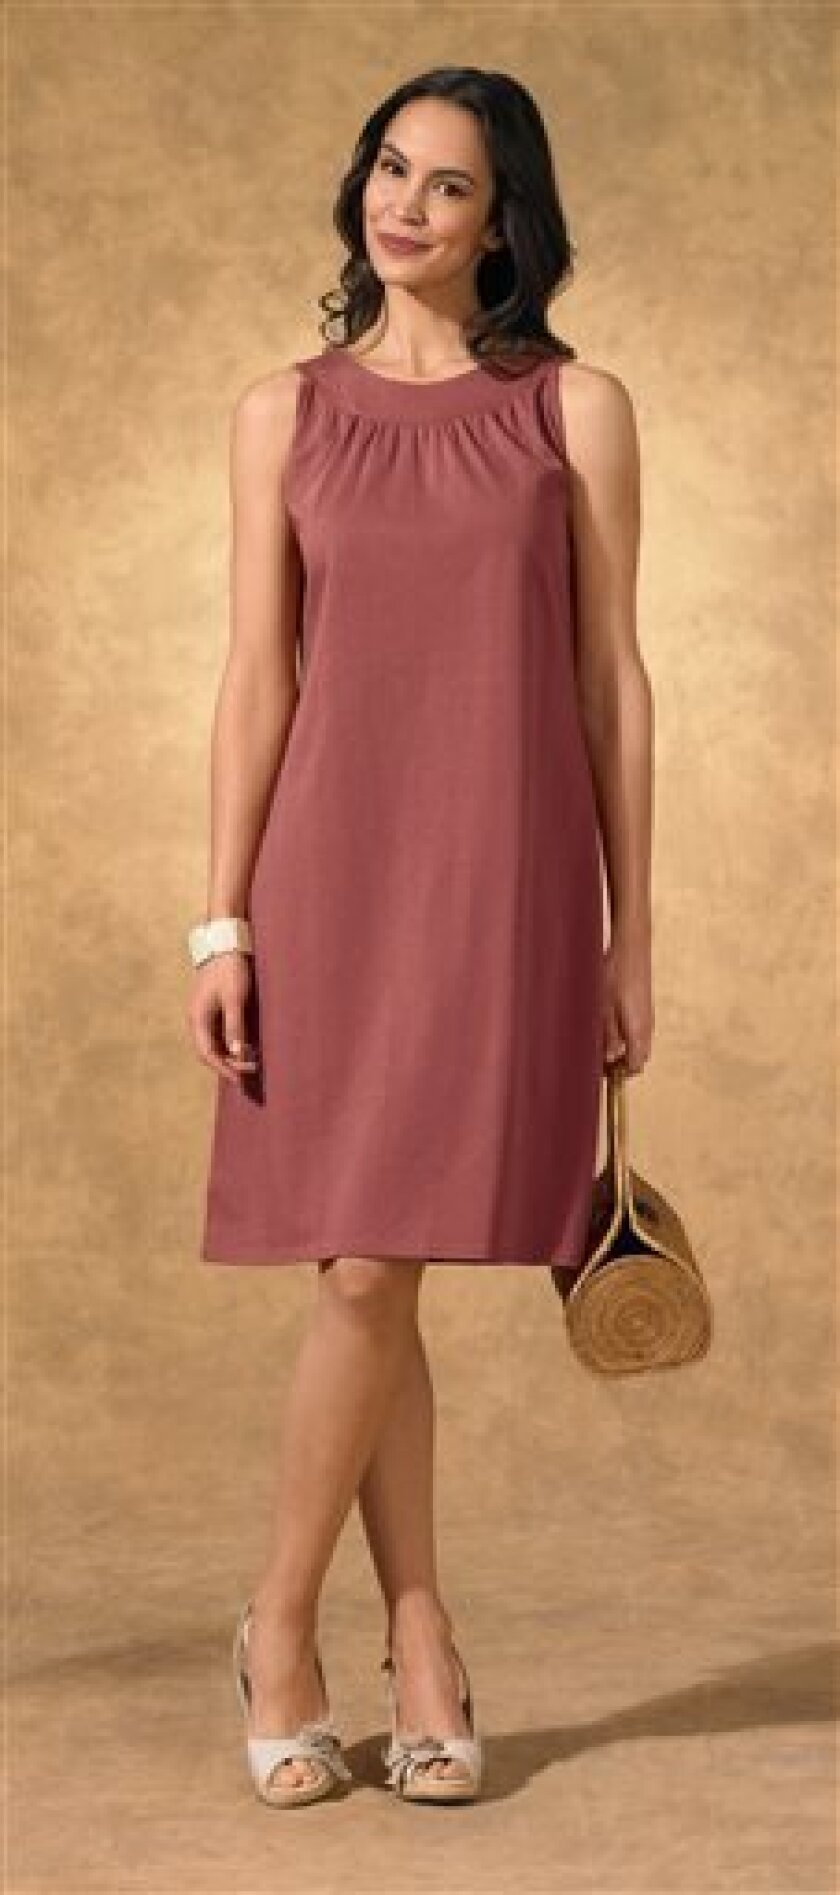 This undated product image provided by Fair Indigo shows one of the company's product. Fair Indigo is an online retailer that sells clothes and accessories that are certified by Fair Trade U.S.A., including $59.90 pima organic cotton dresses, $45.90 faux wrap skirts and $100 floral ballet flats. (A